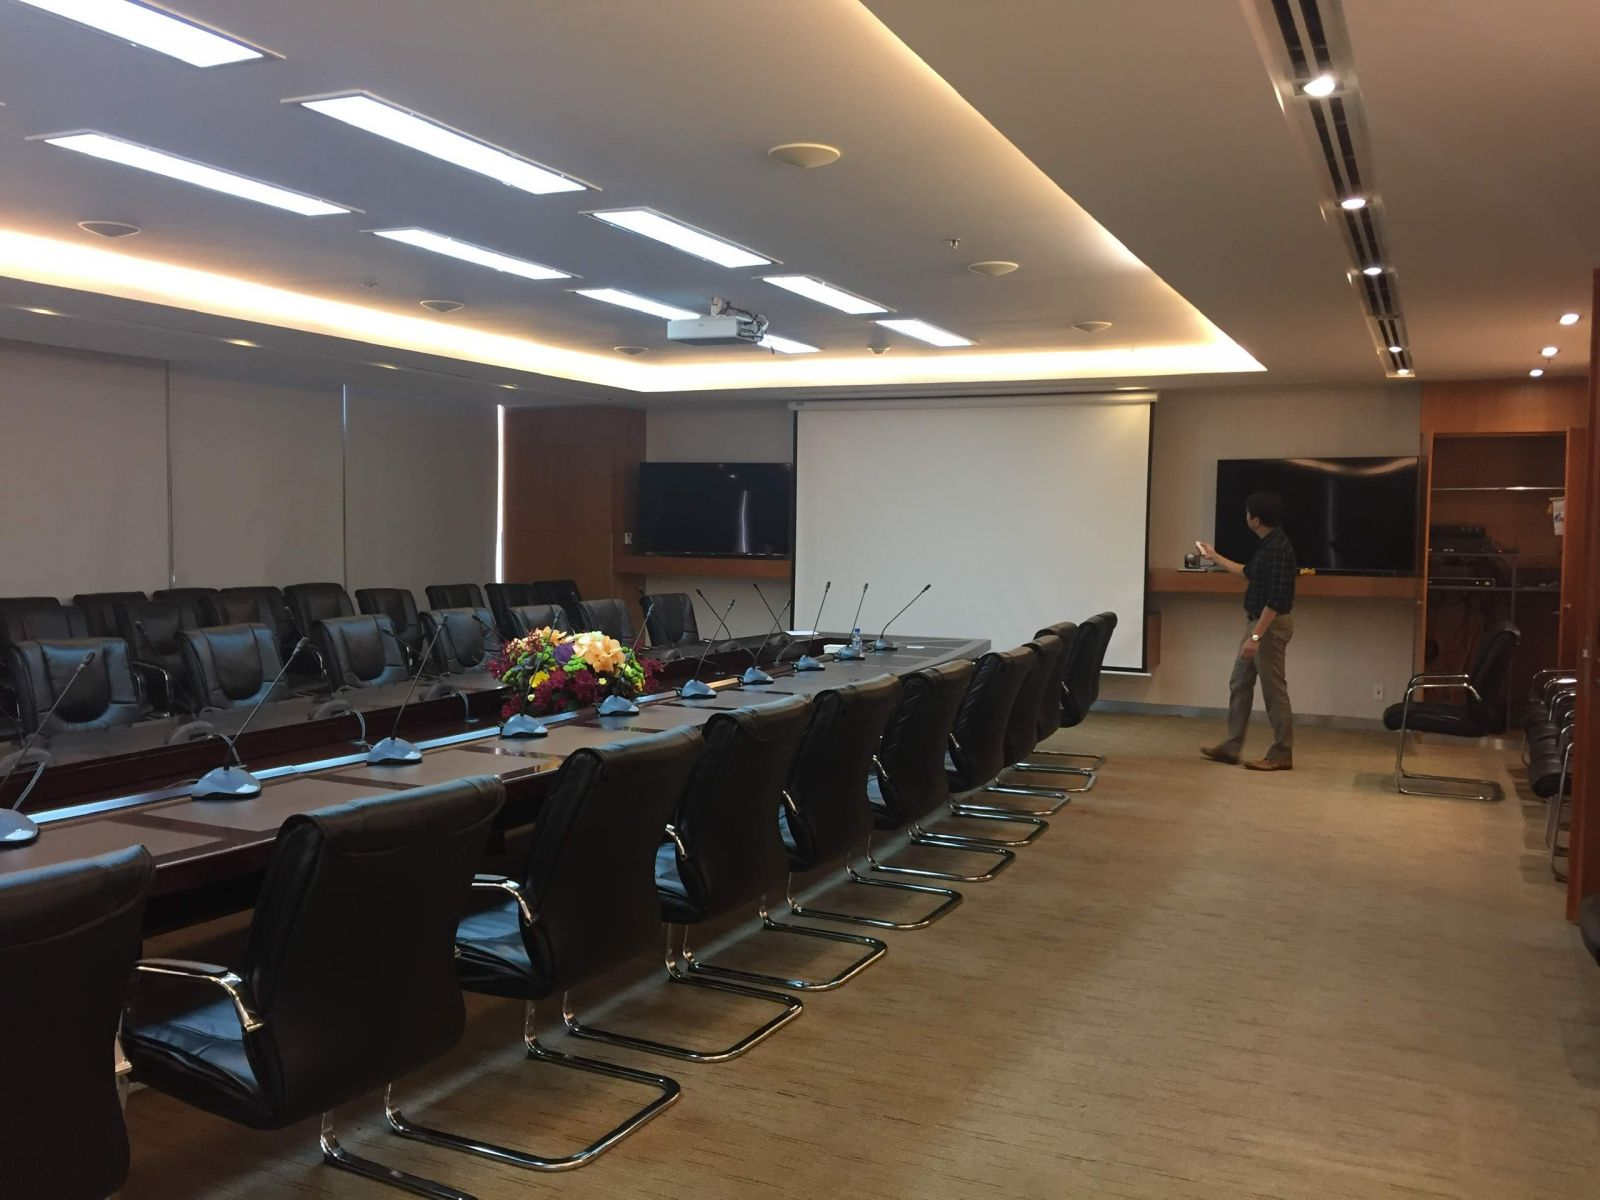 Project meeting room of Viet Nam Oil and Gas Company